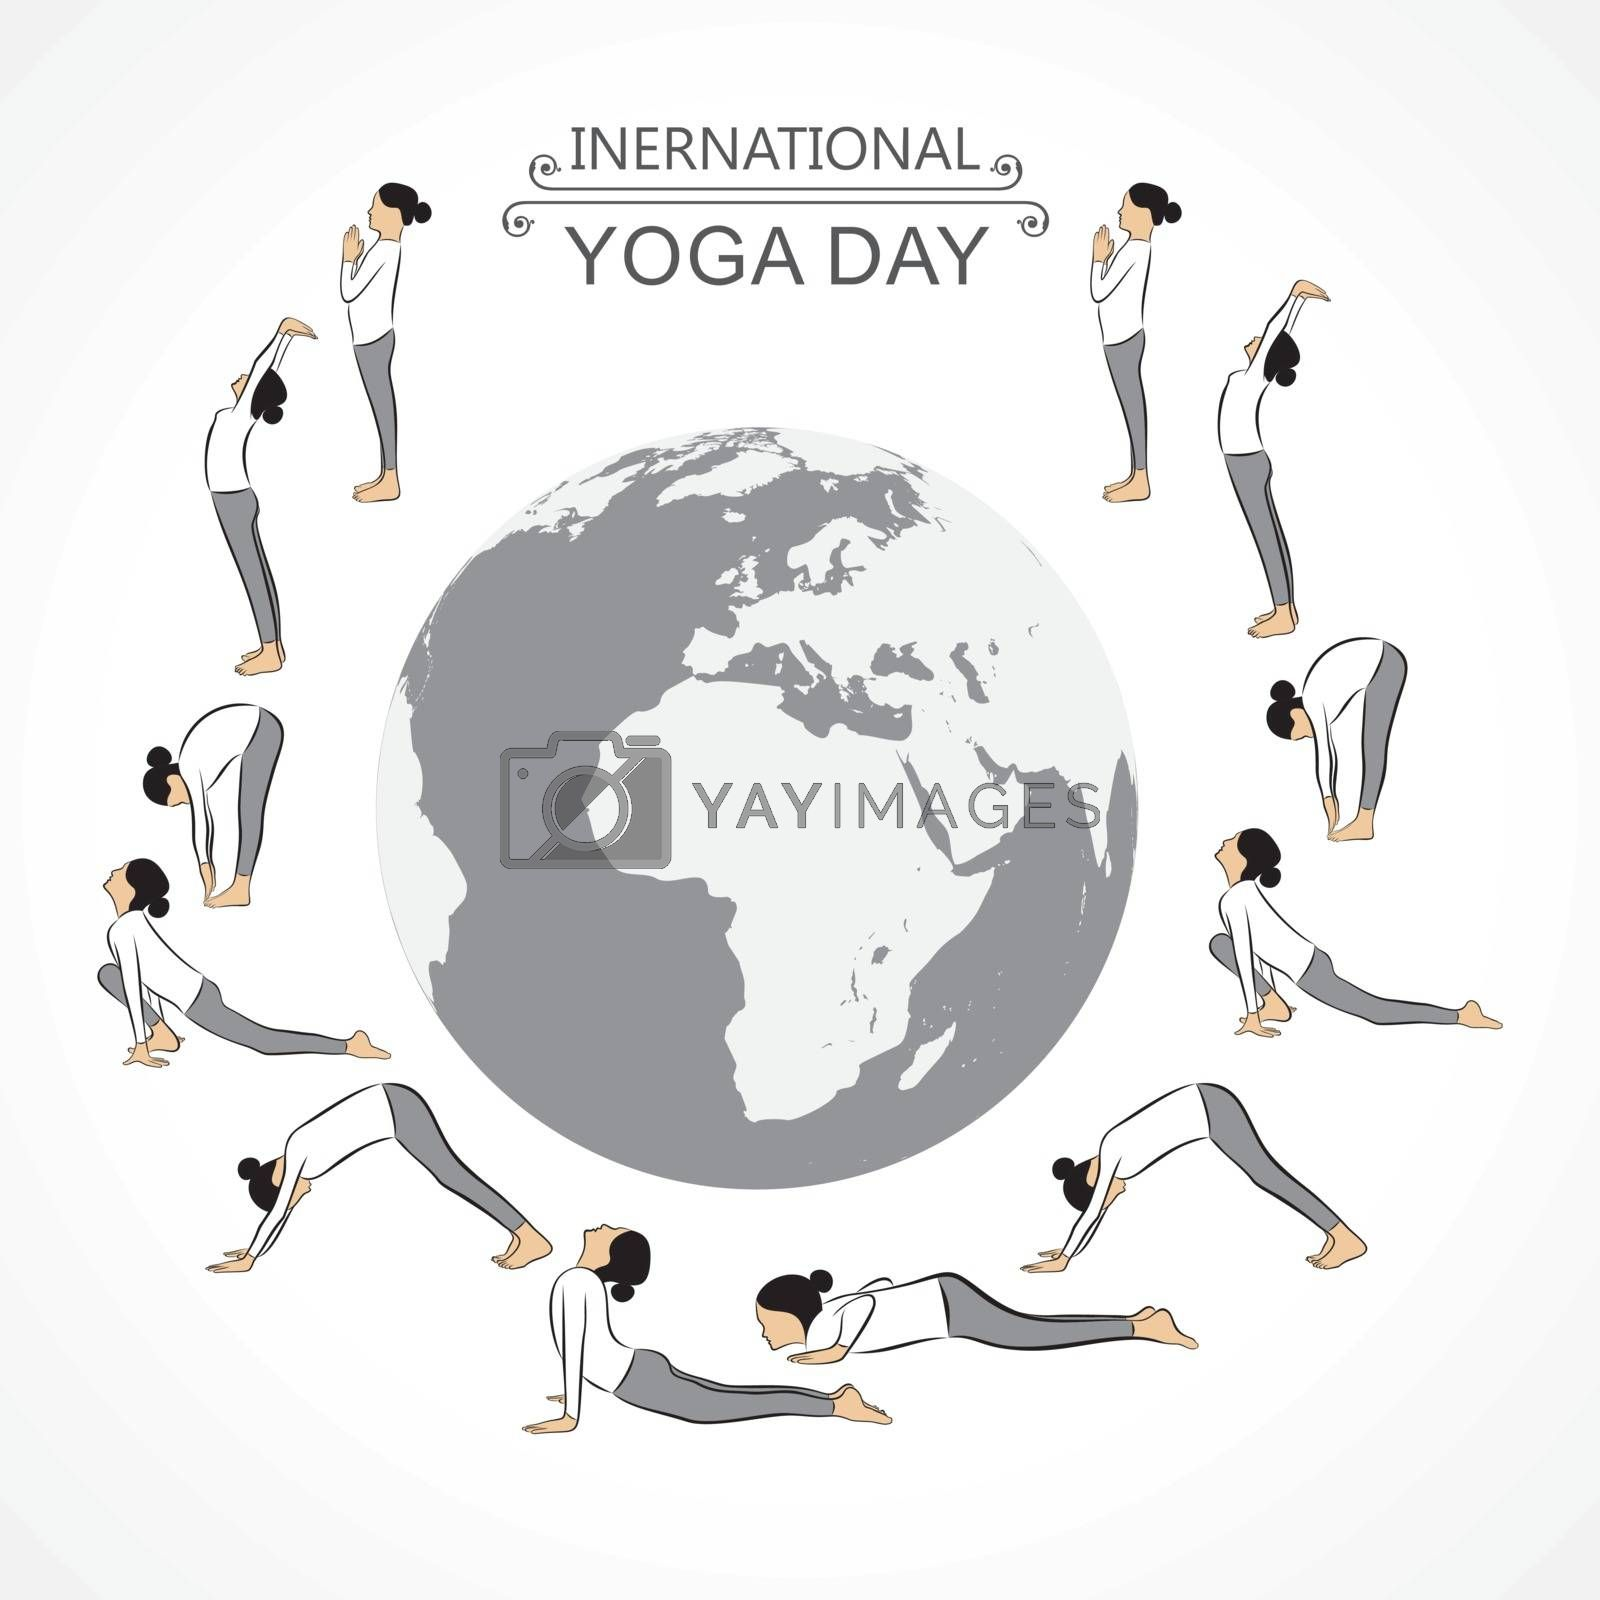 A Girl doing Sun Salutation for International Yoga Day observed on 21st June by graphicsdunia4you